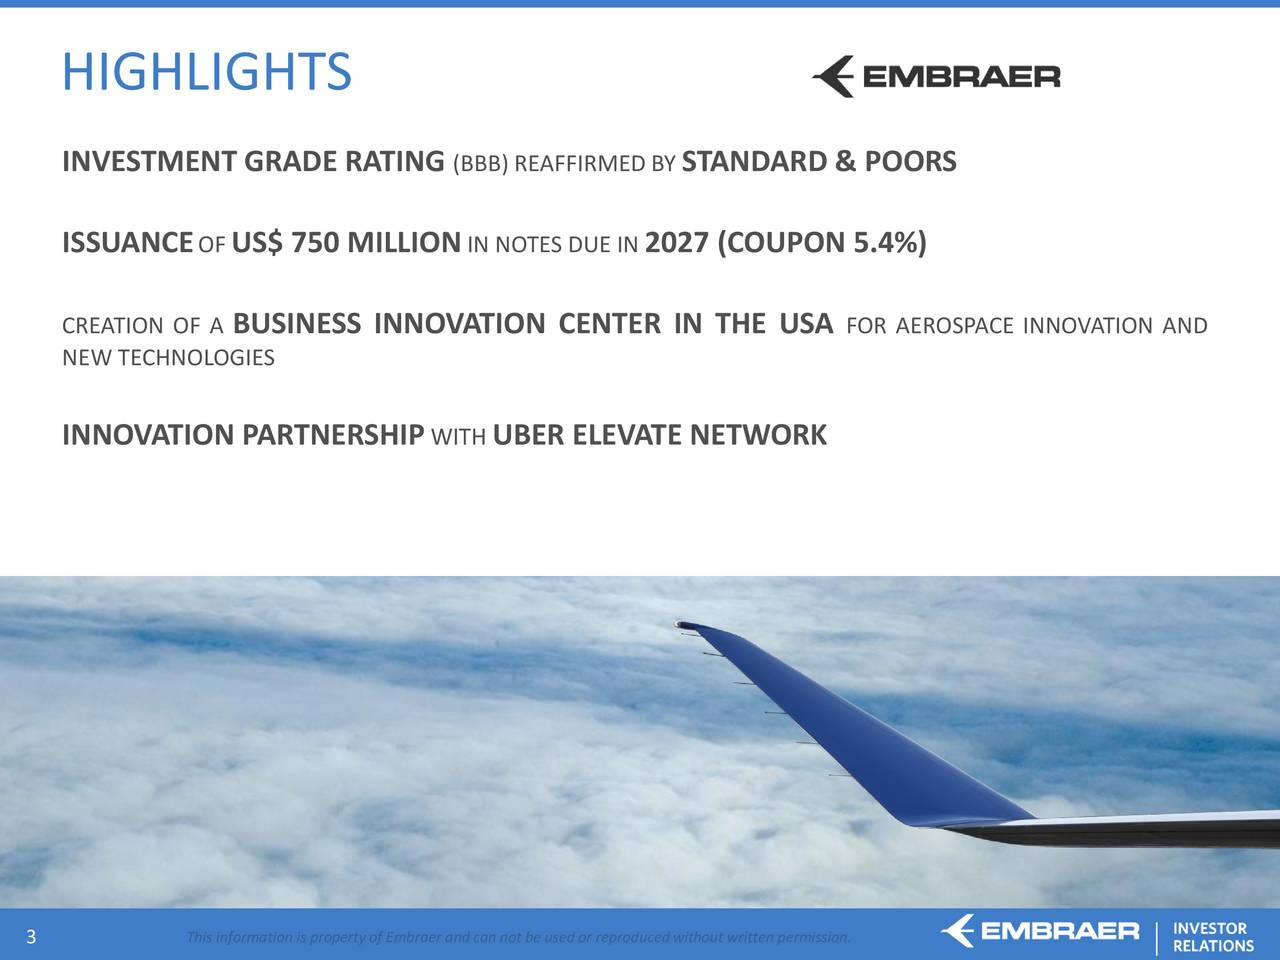 INVESTMENT GRADE RATING (BBB) REAFFIRMEDSTANDARD & POORS ISSUANCE OFUS$ 750 MILLION IN NOTES DUE 2027 (COUPON 5.4%) CREATION OF BUSINESS INNOVATION CENTER IN THE USA FOR AEROSPACE INNOVATION AND NEW TECHNOLOGIES INNOVATION PARTNERSHIP WITH UBER ELEVATE NETWORK 3 This information is property of Embraer and can not be used or reproduced without written permission.